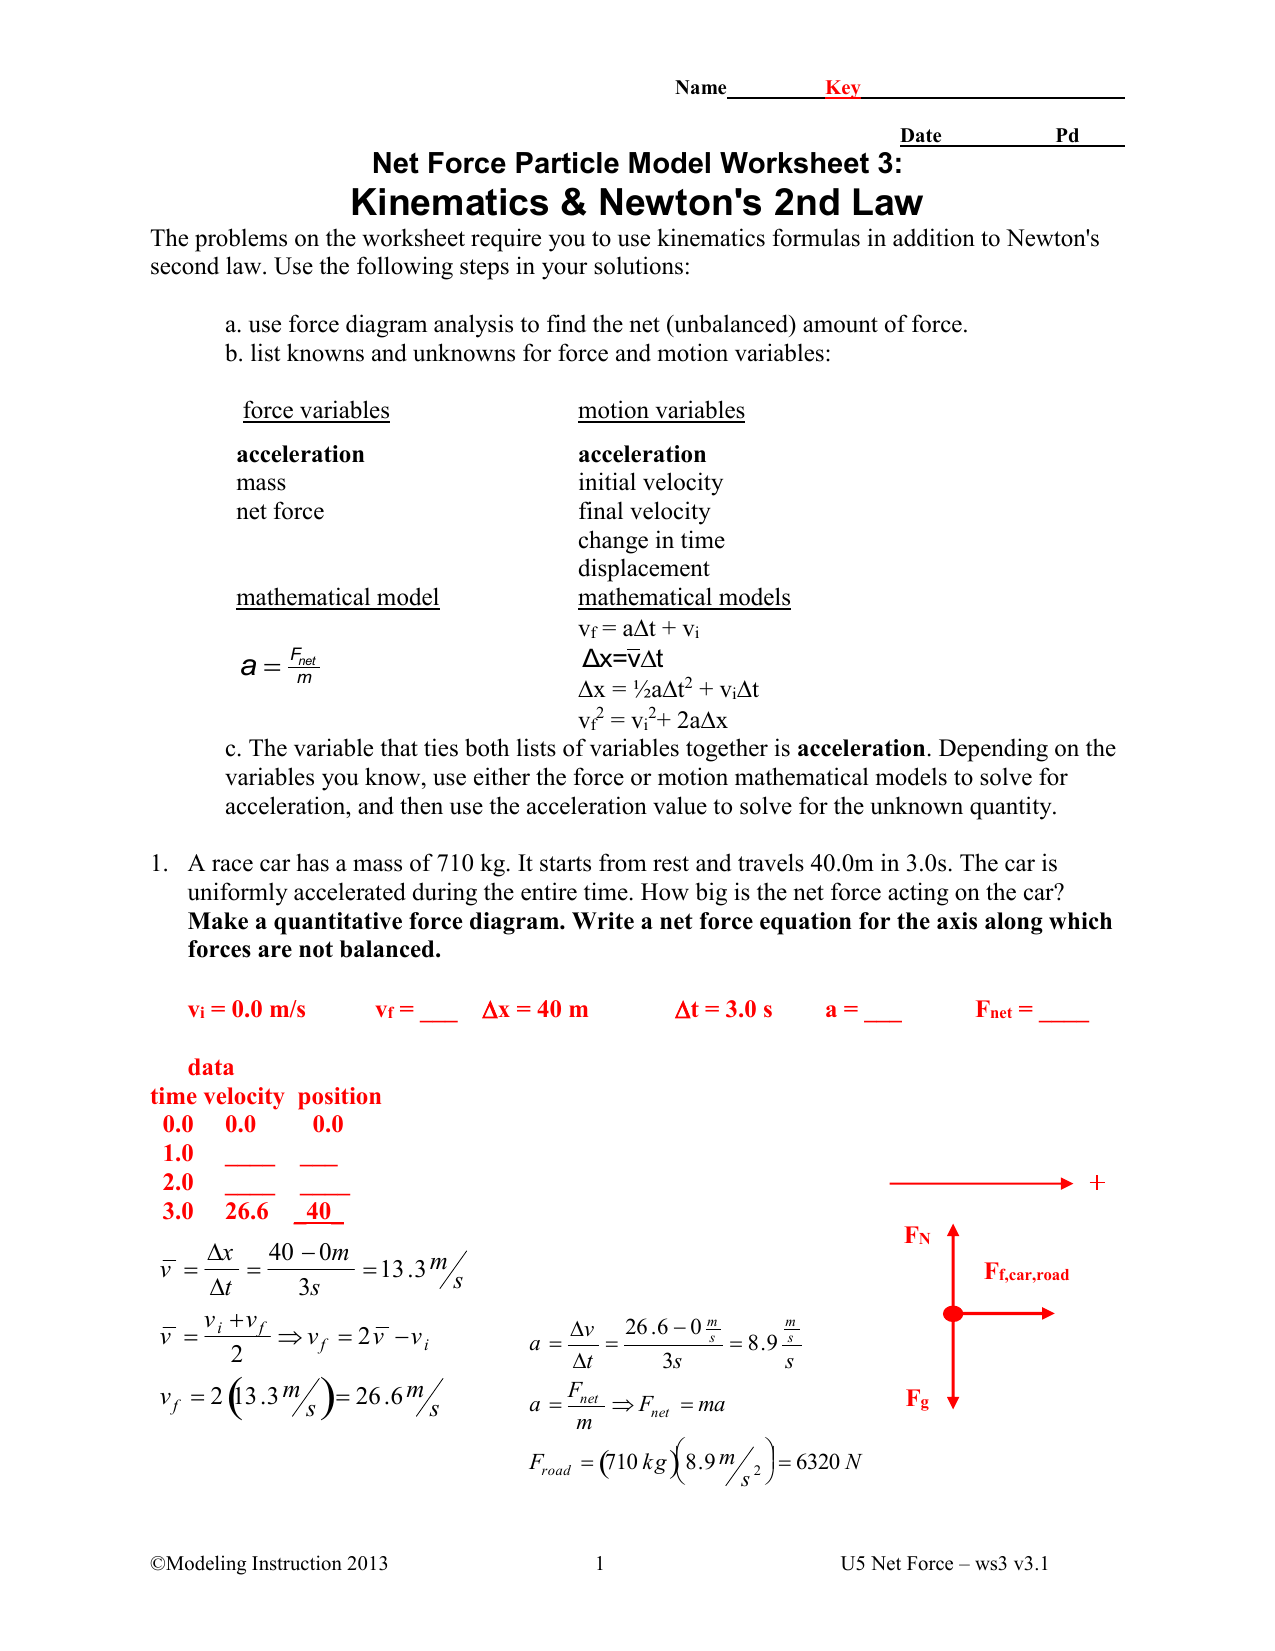 Printables Of Net Force Particle Model Worksheet 5 Newton